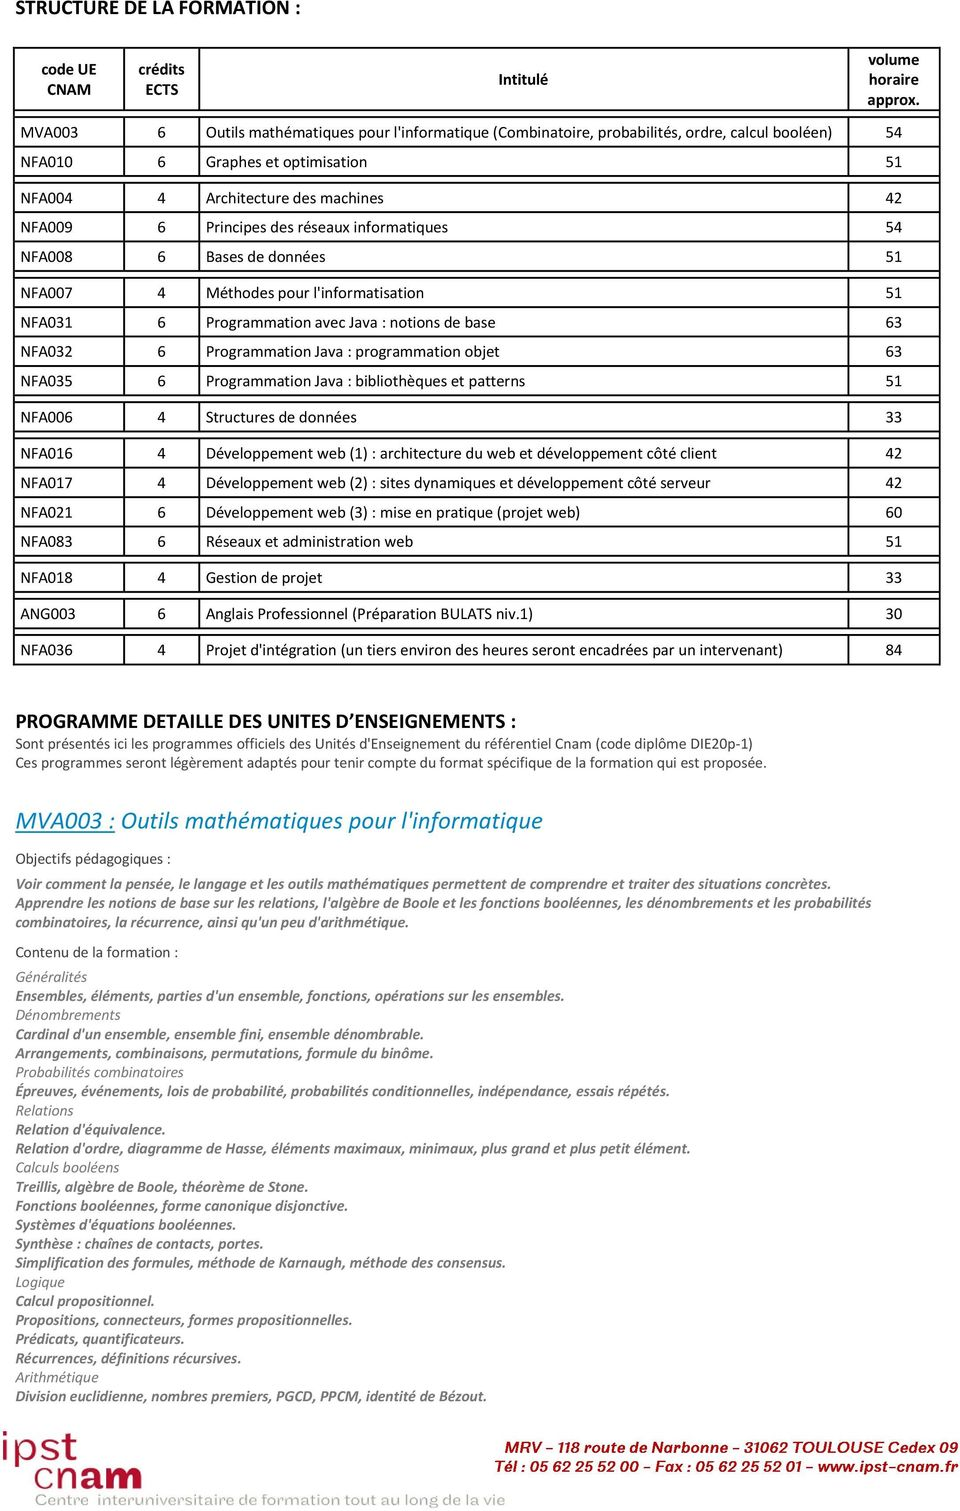 des réseaux informatiques 54 NFA008 6 Bases de données 51 NFA007 4 Méthodes pour l'informatisation 51 NFA031 6 Programmation avec Java : notions de base 63 NFA032 6 Programmation Java : programmation